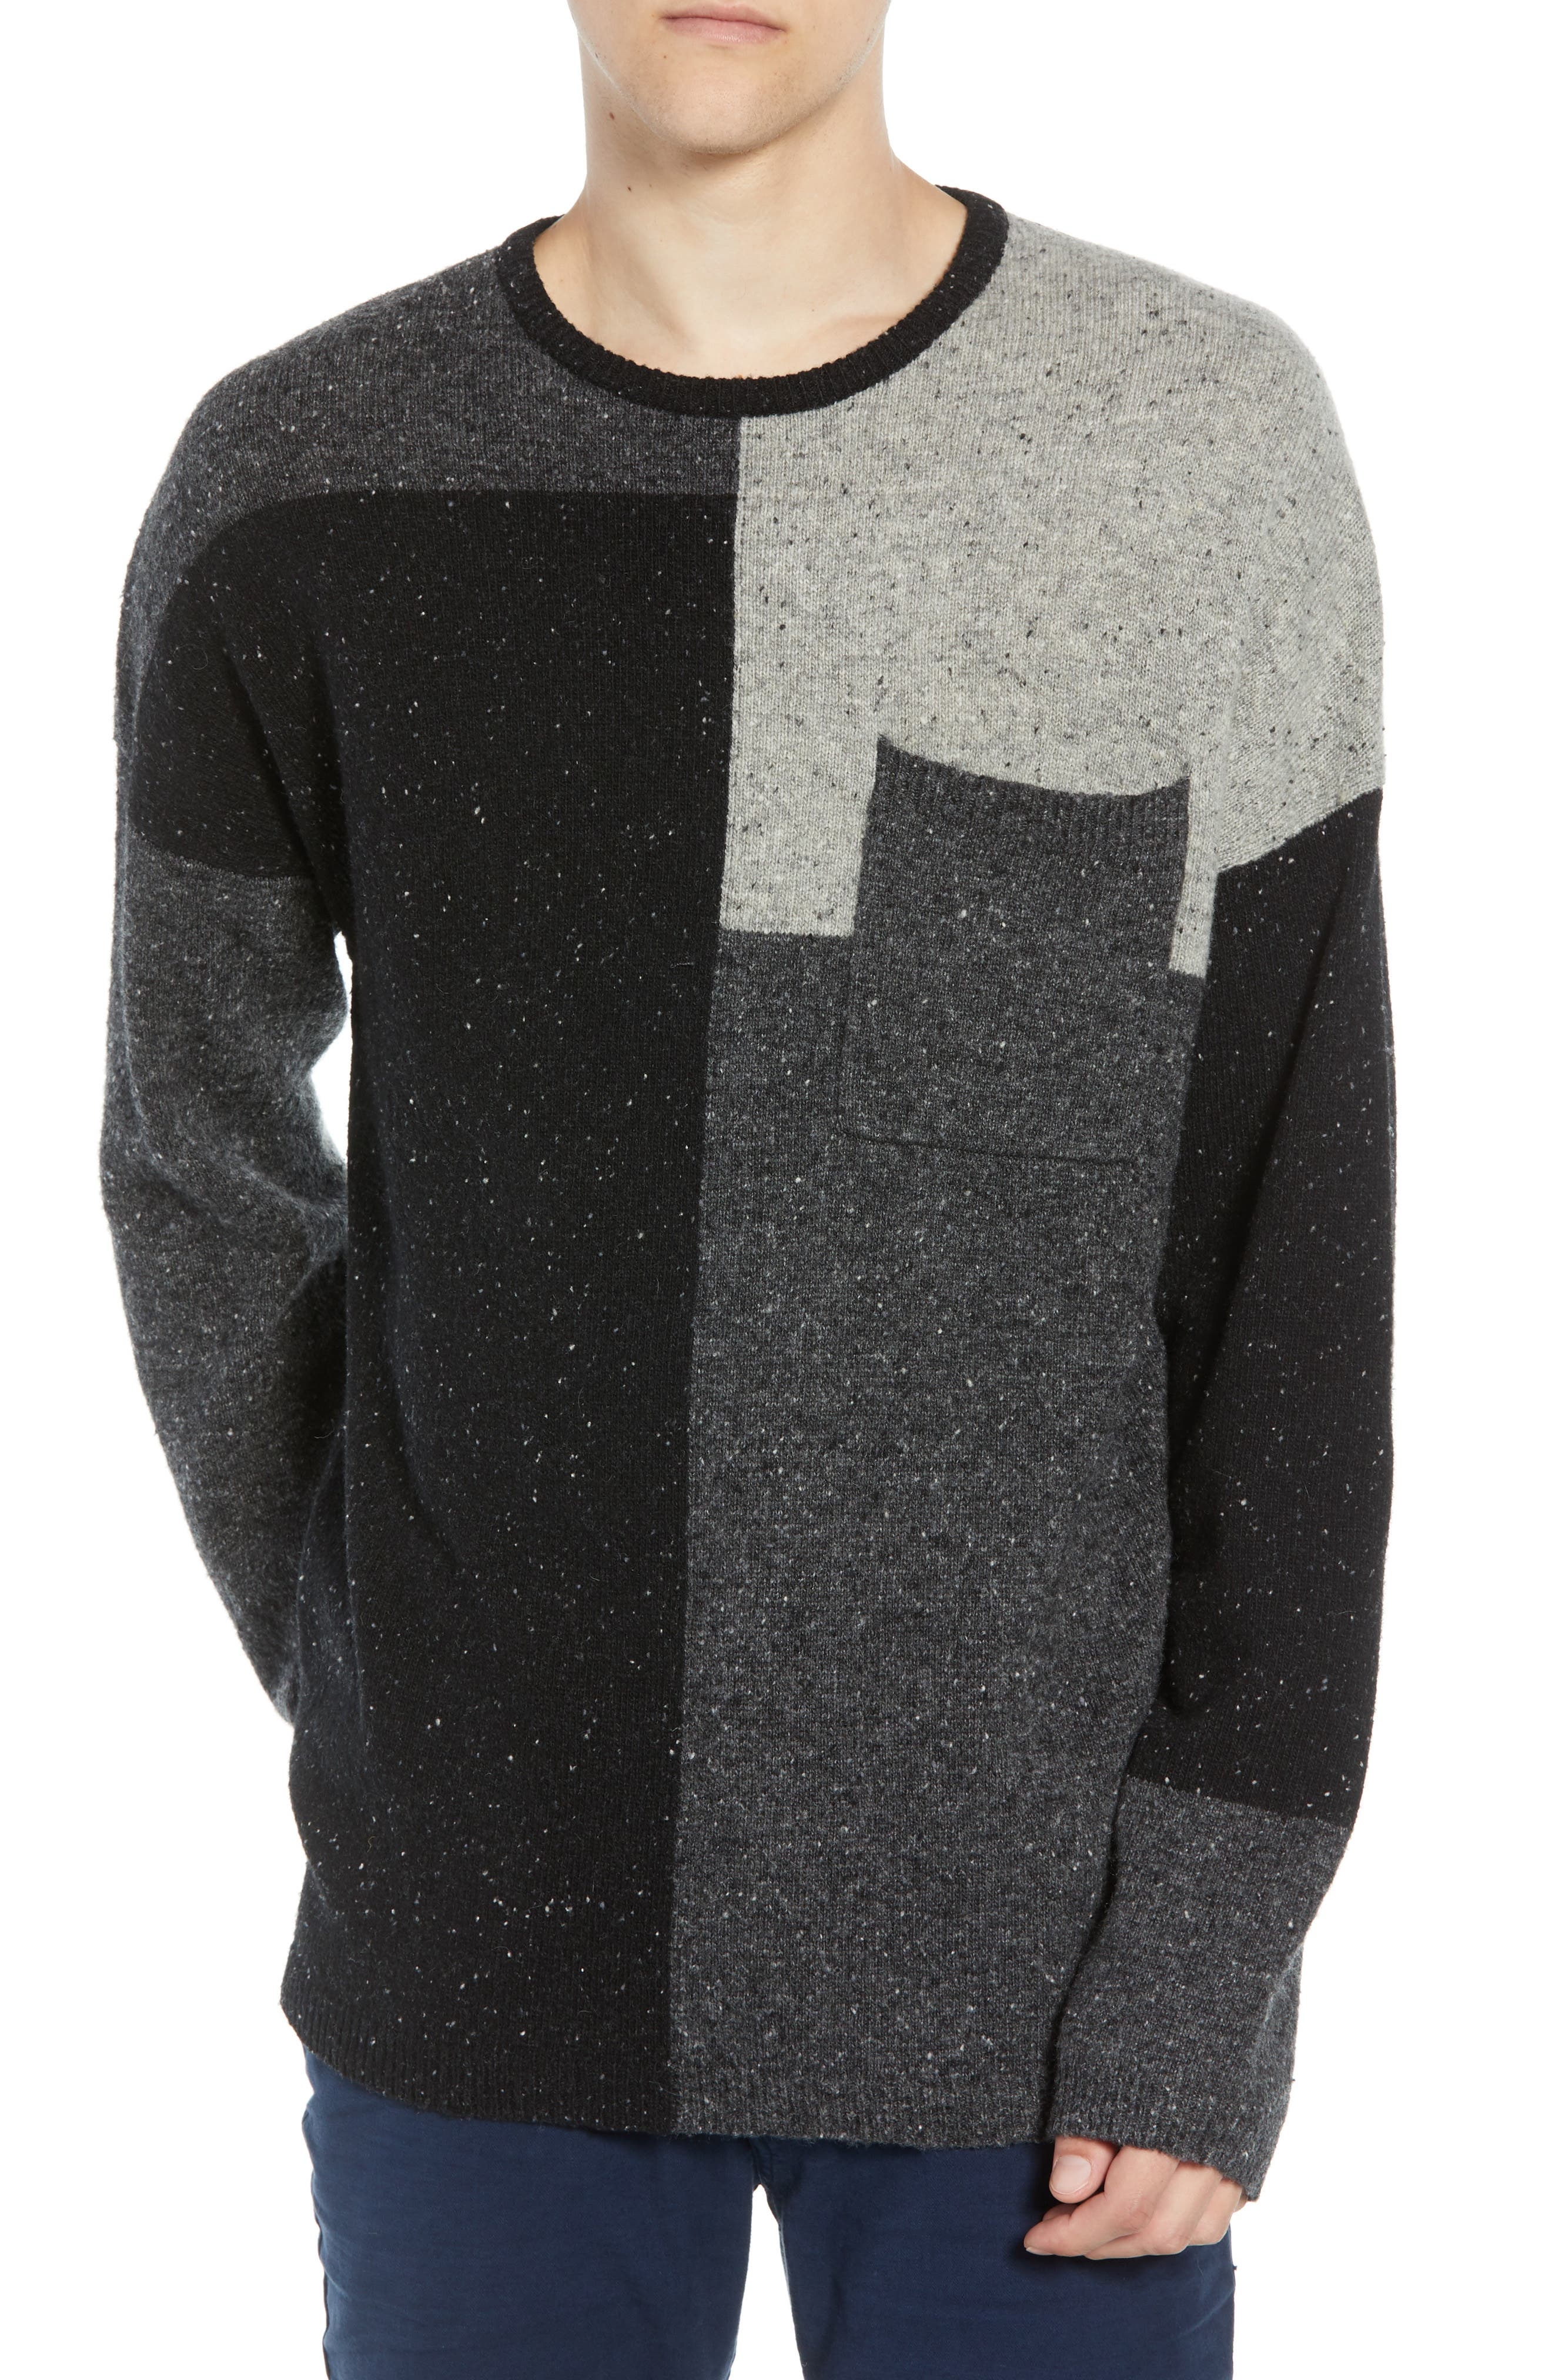 Patchwork Donegal Wool Blend Sweater,                             Main thumbnail 1, color,                             LIGHT GREY MELANGE CHARCOAL